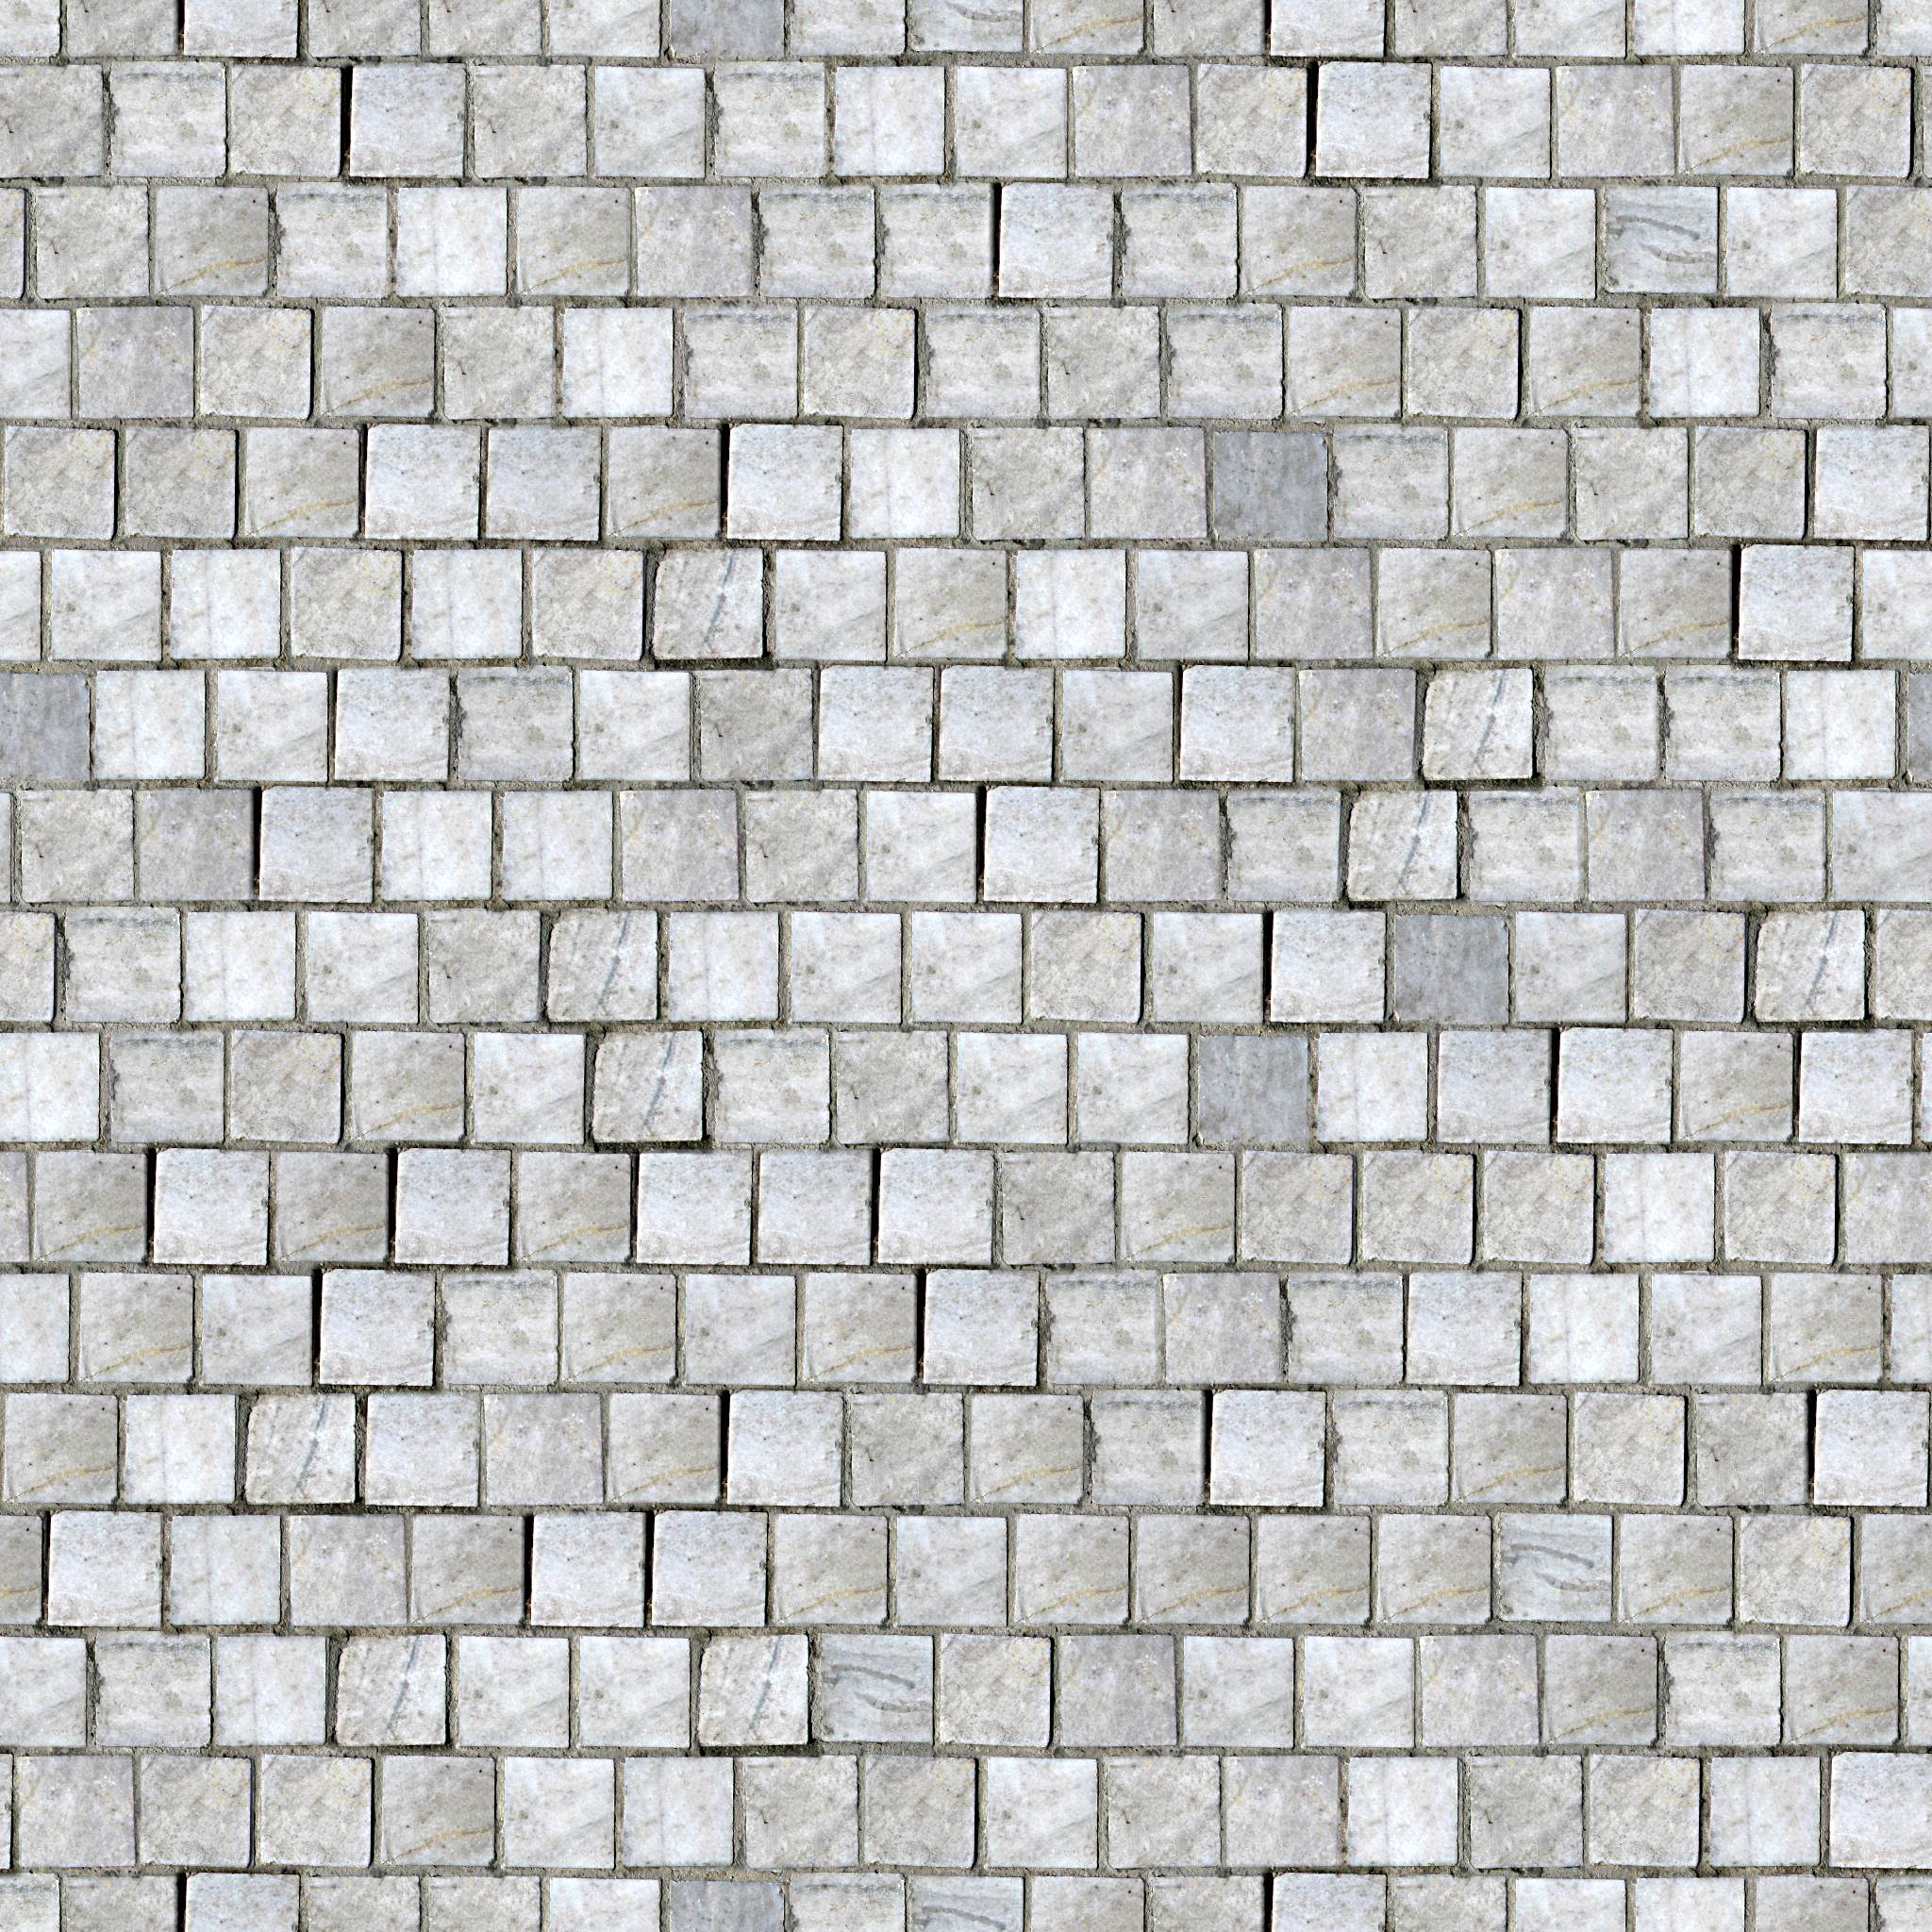 Seamless Cobble Texture : Camoflage seamless texture maps free to use page